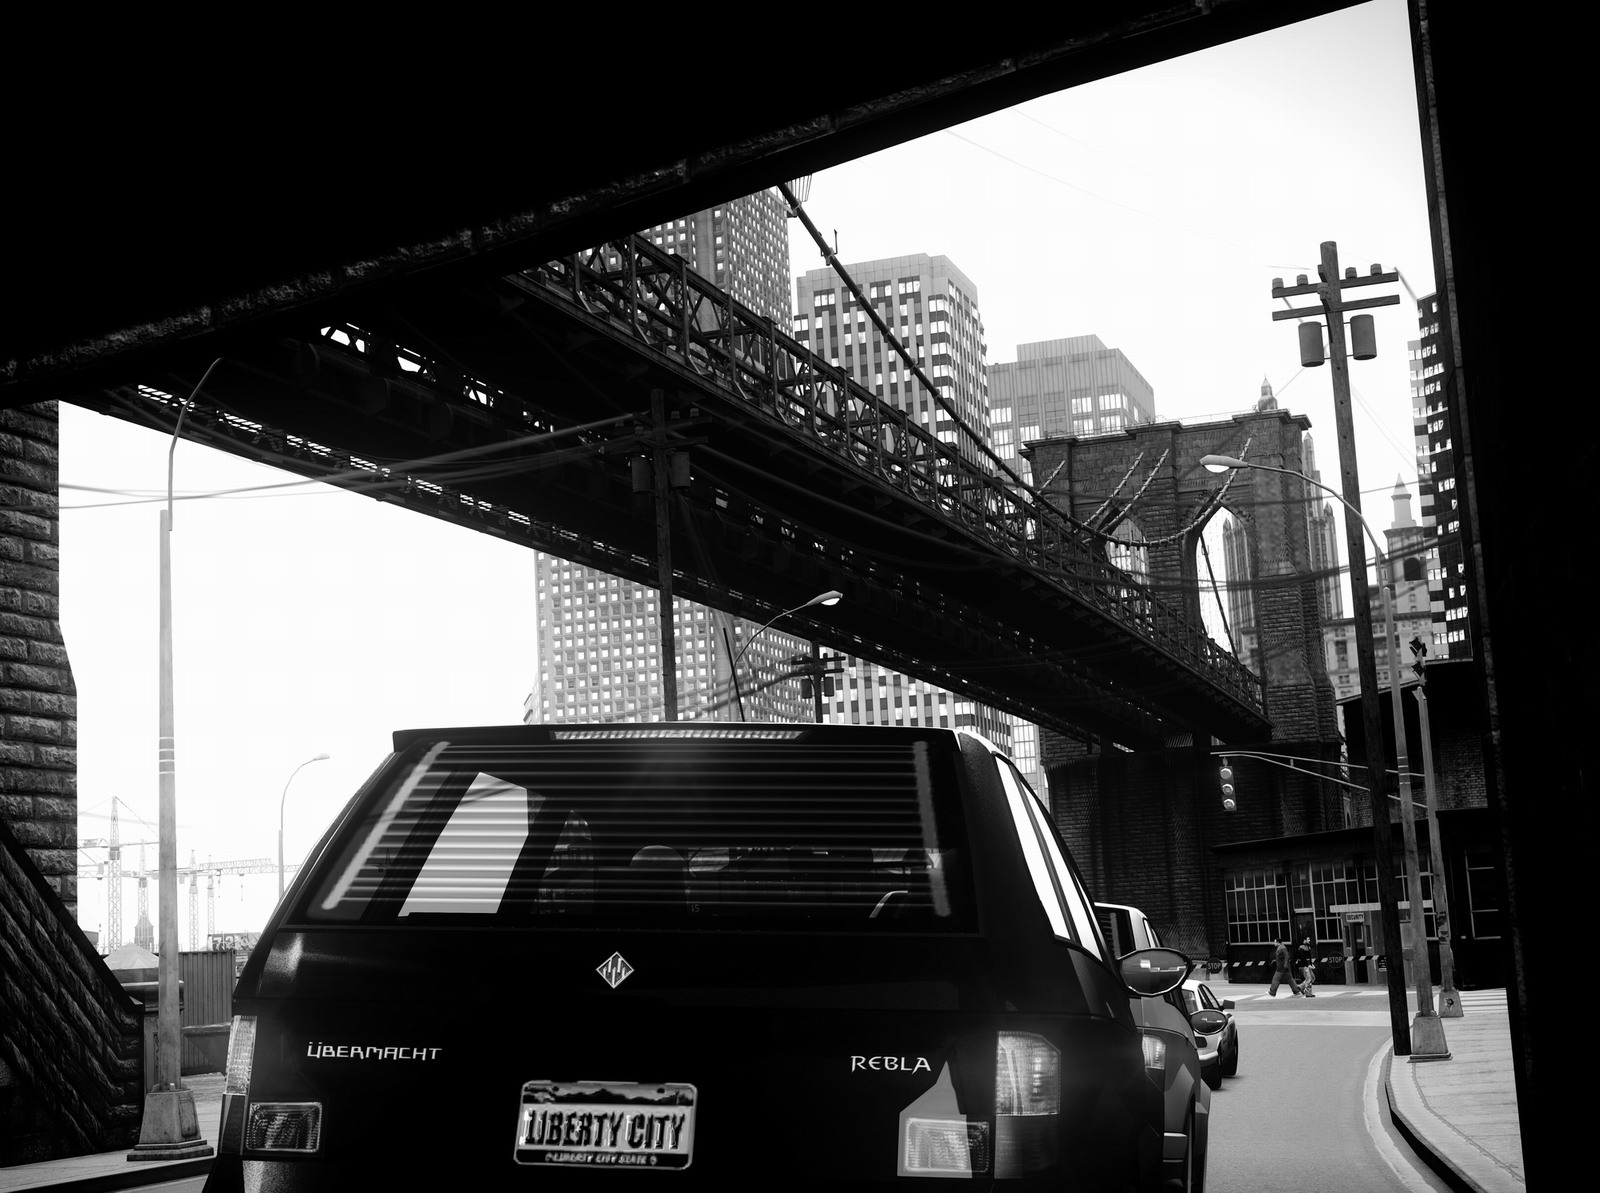 GTA IV Rendered At 6K In Black & White Looks So Real Thanks